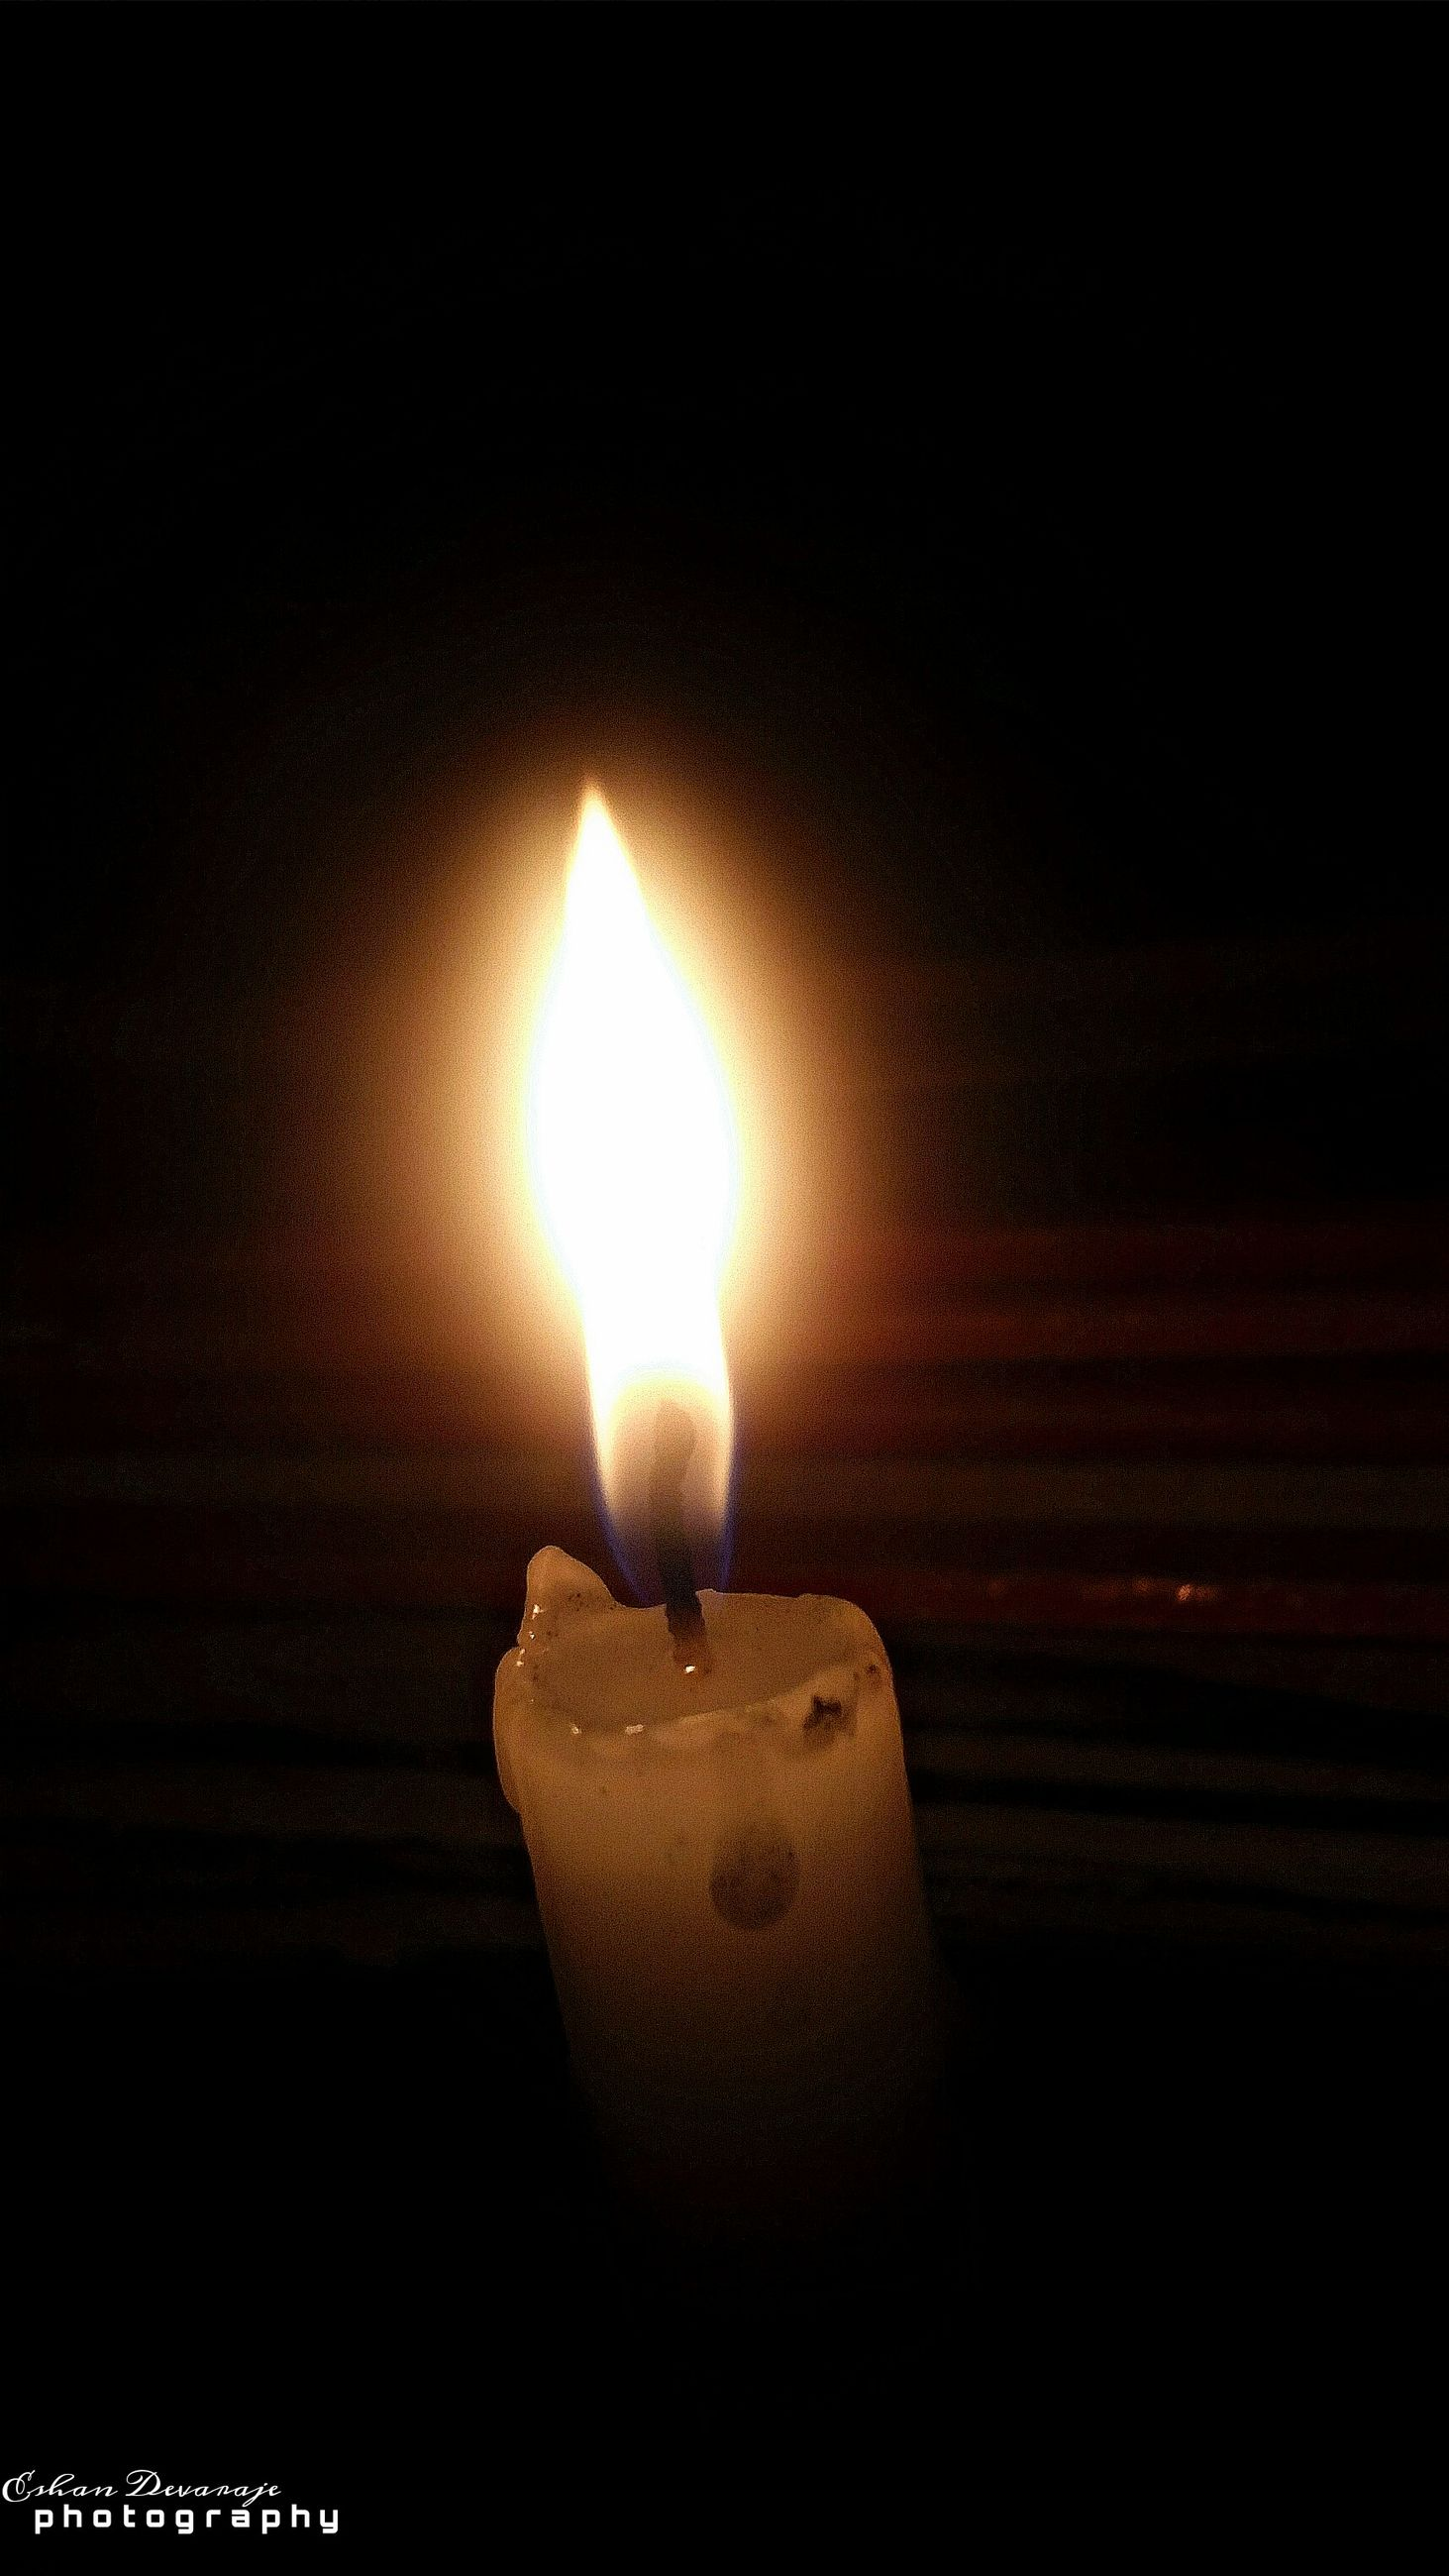 flame, illuminated, burning, glowing, heat - temperature, night, fire - natural phenomenon, dark, candle, indoors, lit, light - natural phenomenon, close-up, darkroom, fire, lighting equipment, copy space, no people, black background, candlelight